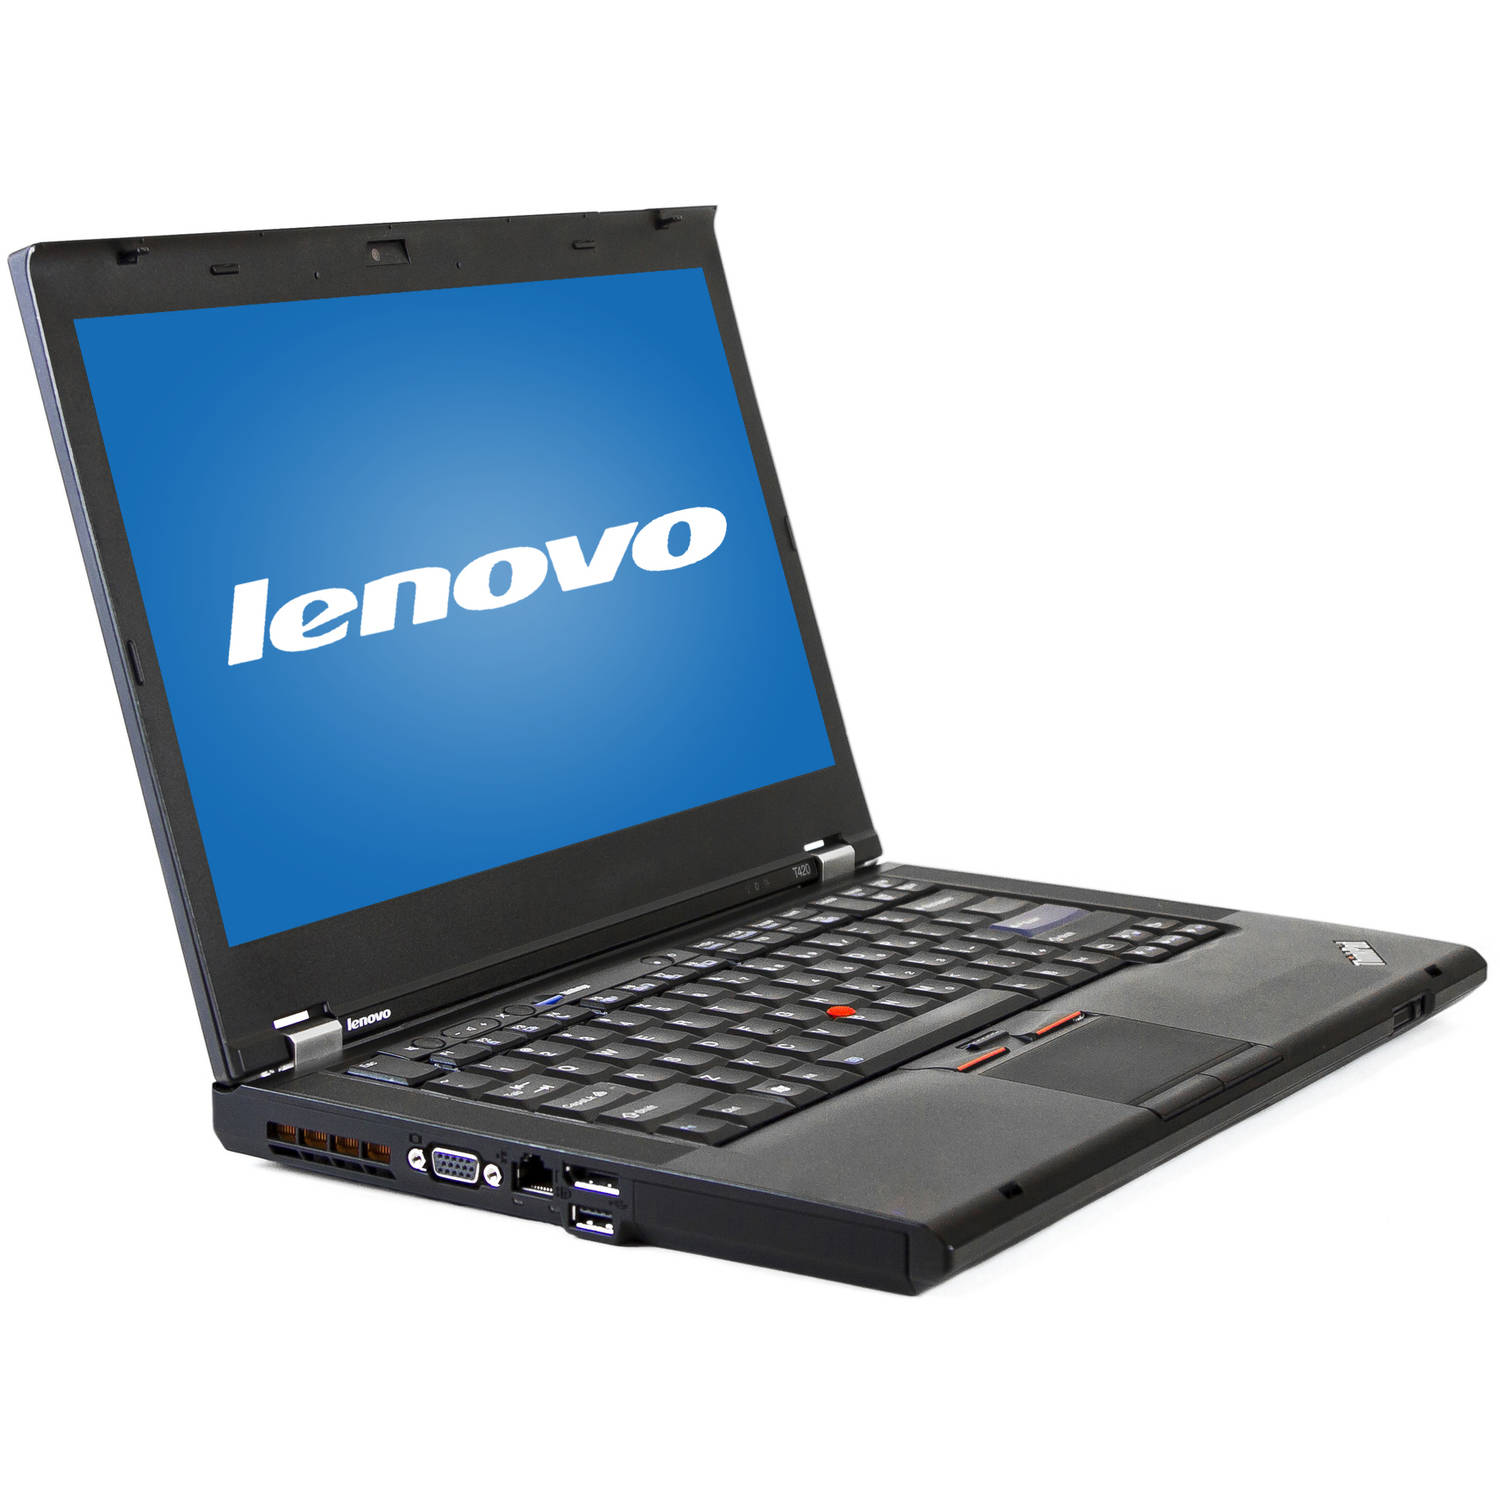 "Refurbished Lenovo Black 14"" T420 Laptop PC with Intel Core i5-2520M Processor, 6GB Memory, 500GB Hard Drive and Windows 10 Pro"